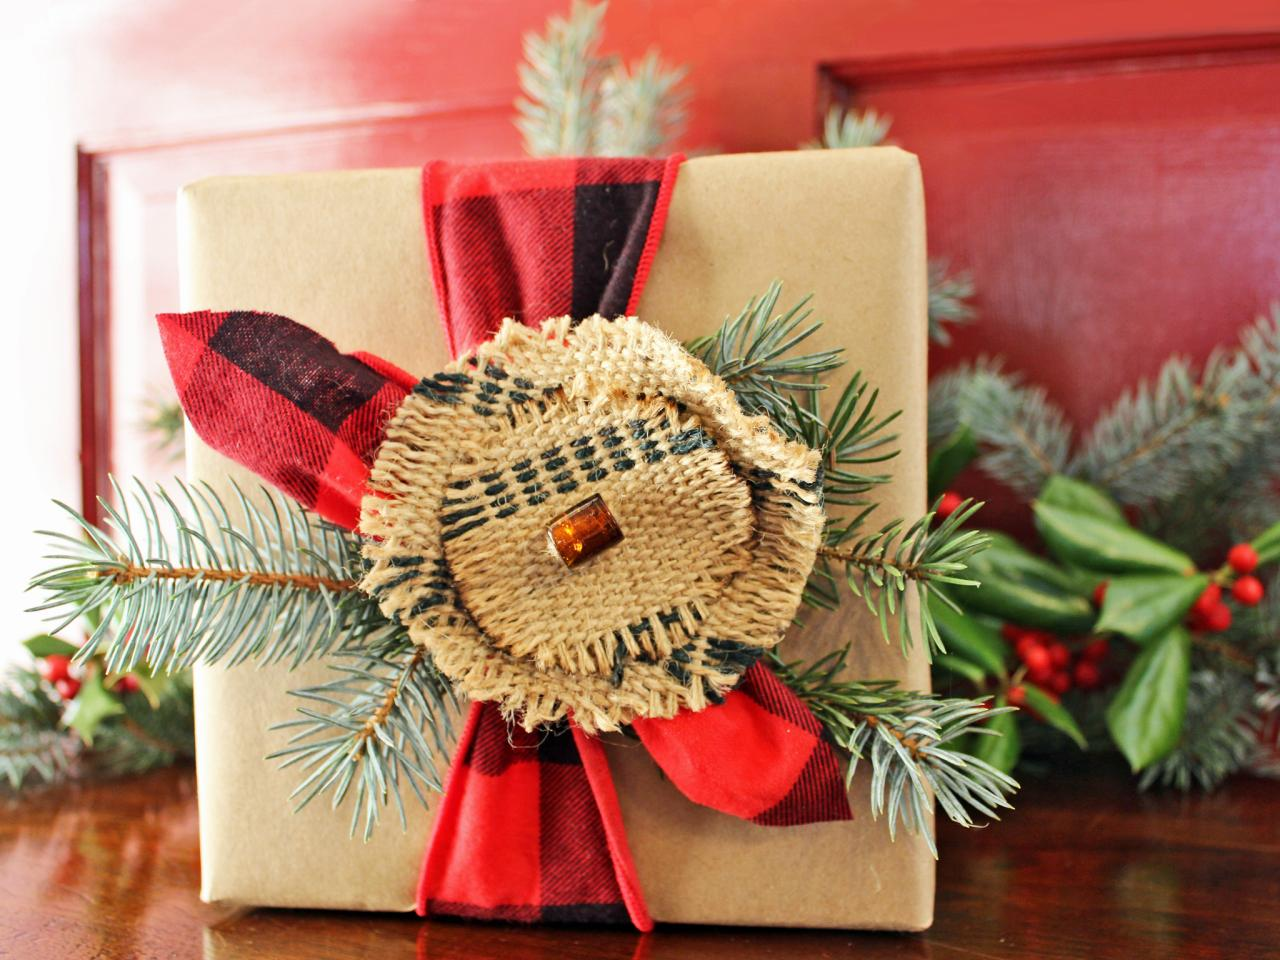 WRAP UR LOVED ONES GIFTS WITH BEAUTIFUL GIFT PACKING